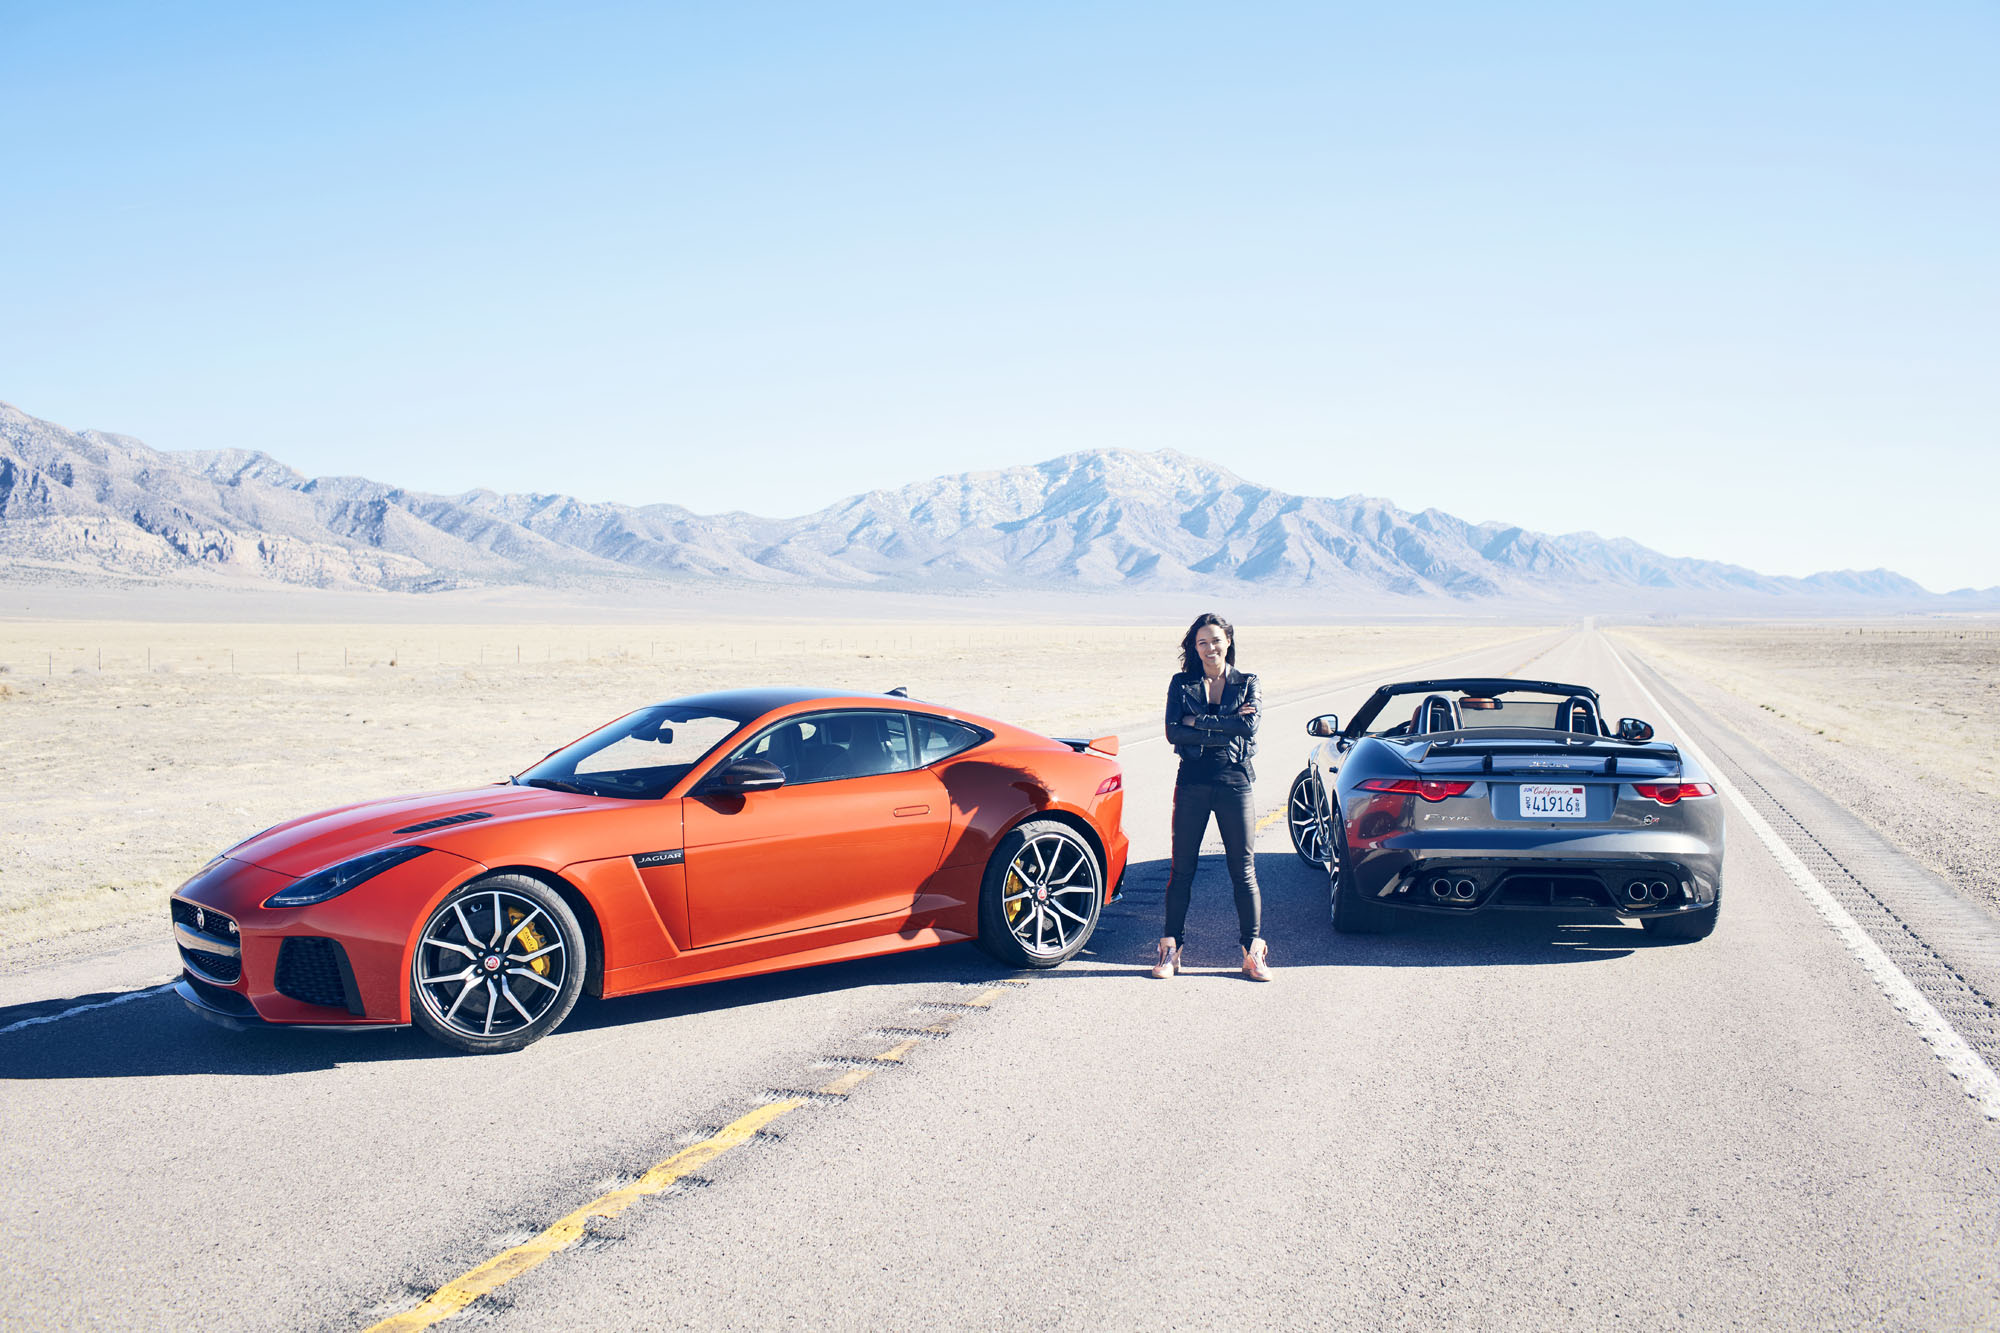 Range Rover Venom >> Fast and Furious' Michelle Rodriguez hits 201 mph in Jaguar F-Type SVR: Video